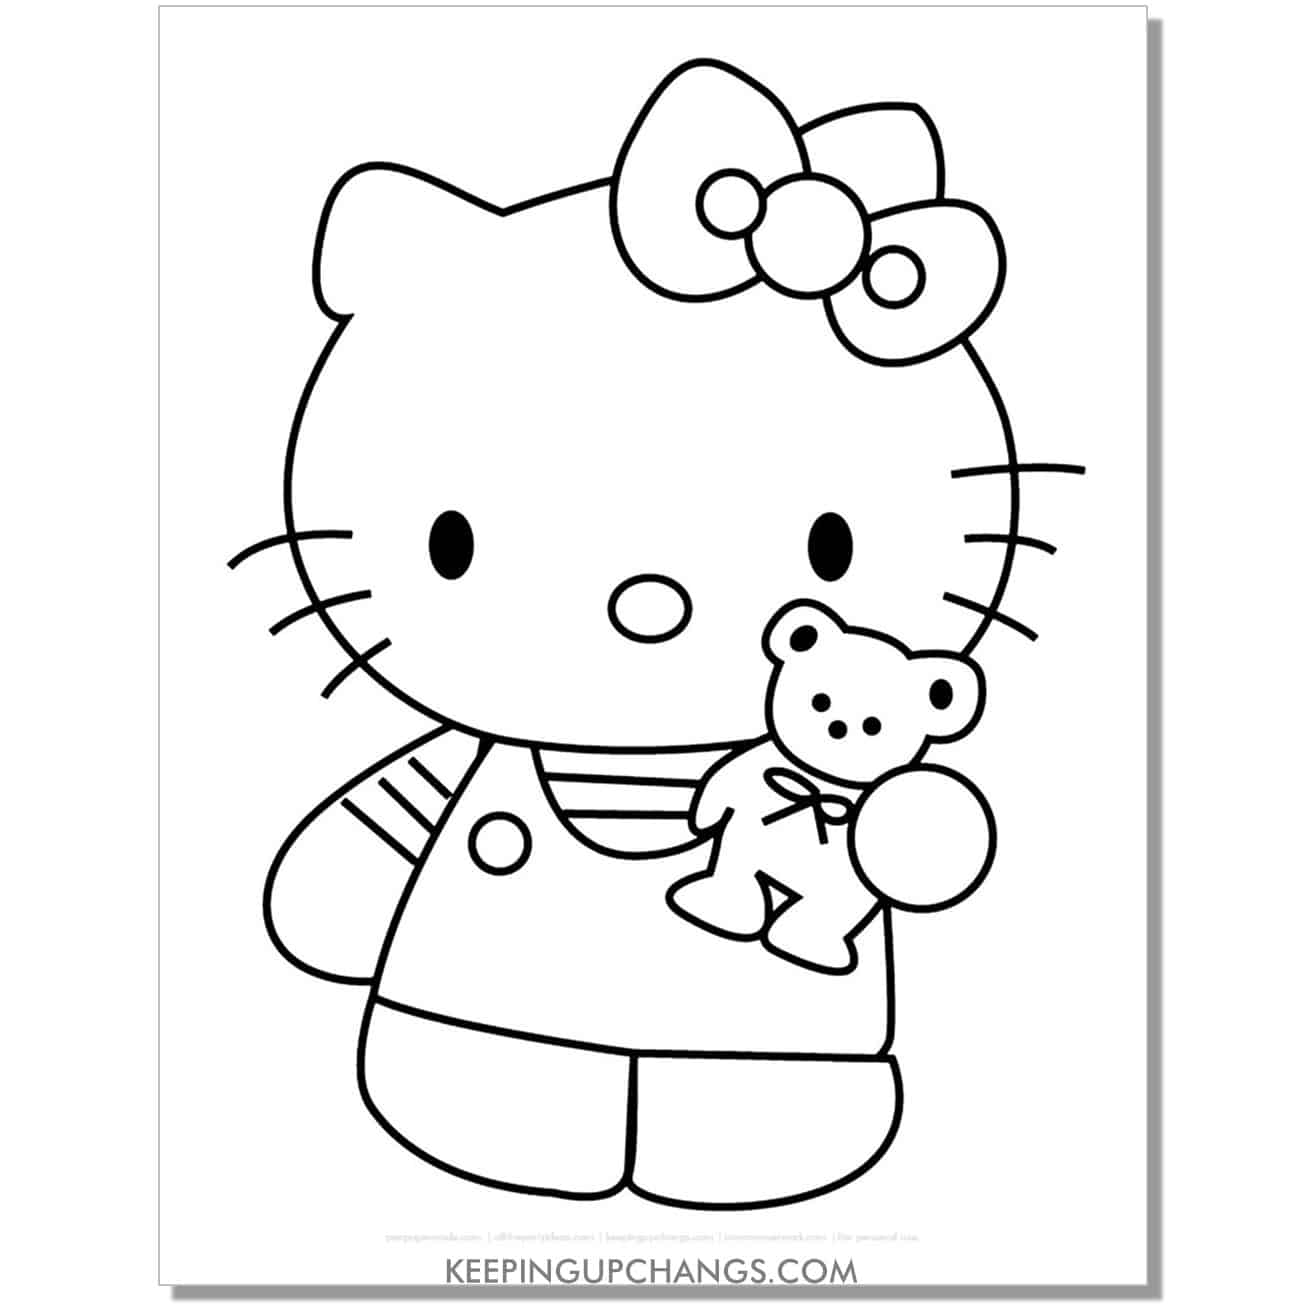 hello kitty with teddy bear coloring page.